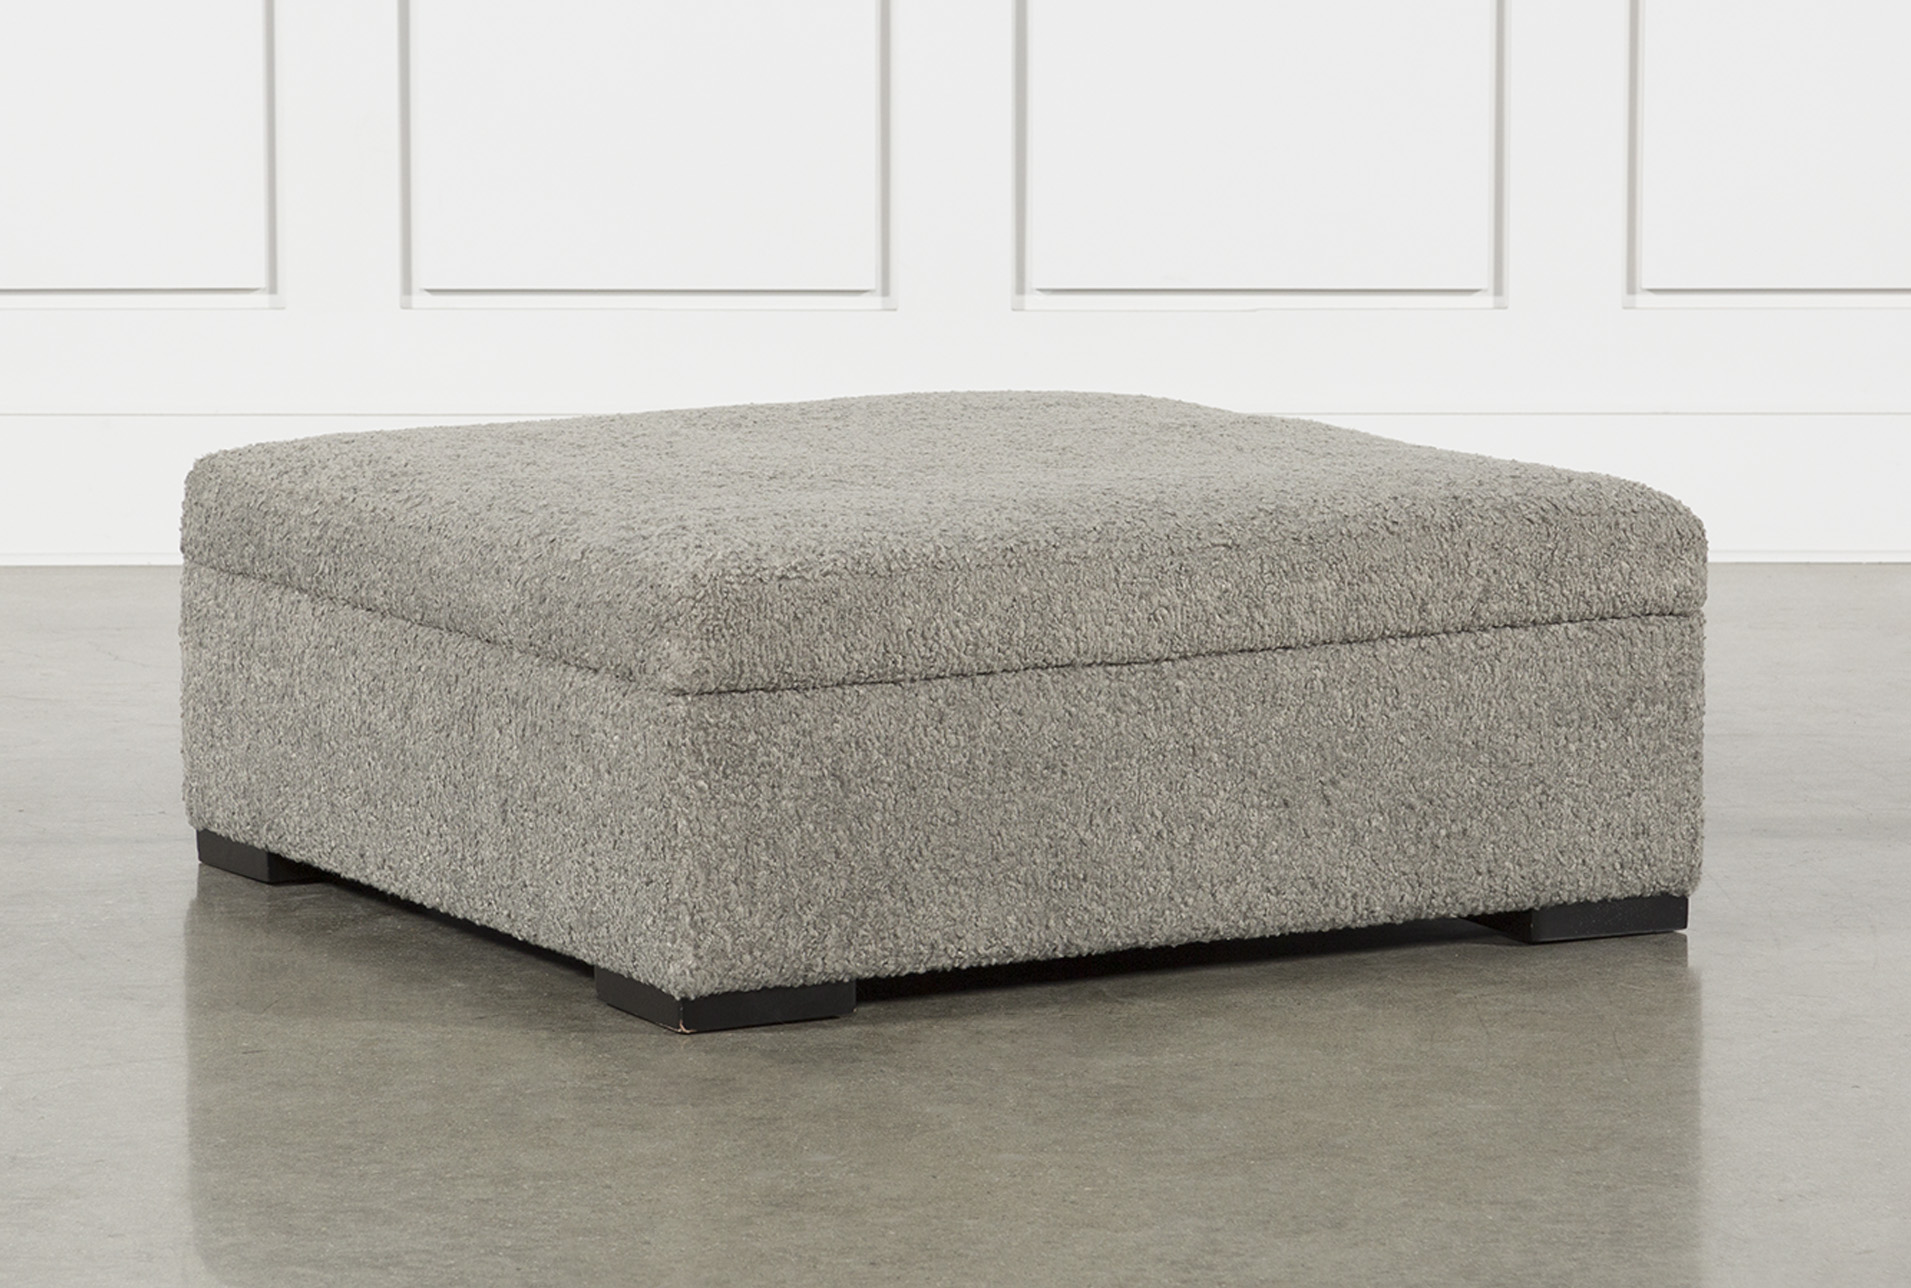 Norah Accent Storage Ottoman By Nate Berkus And Jeremiah Brent (Qty: 1) Has  Been Successfully Added To Your Cart.